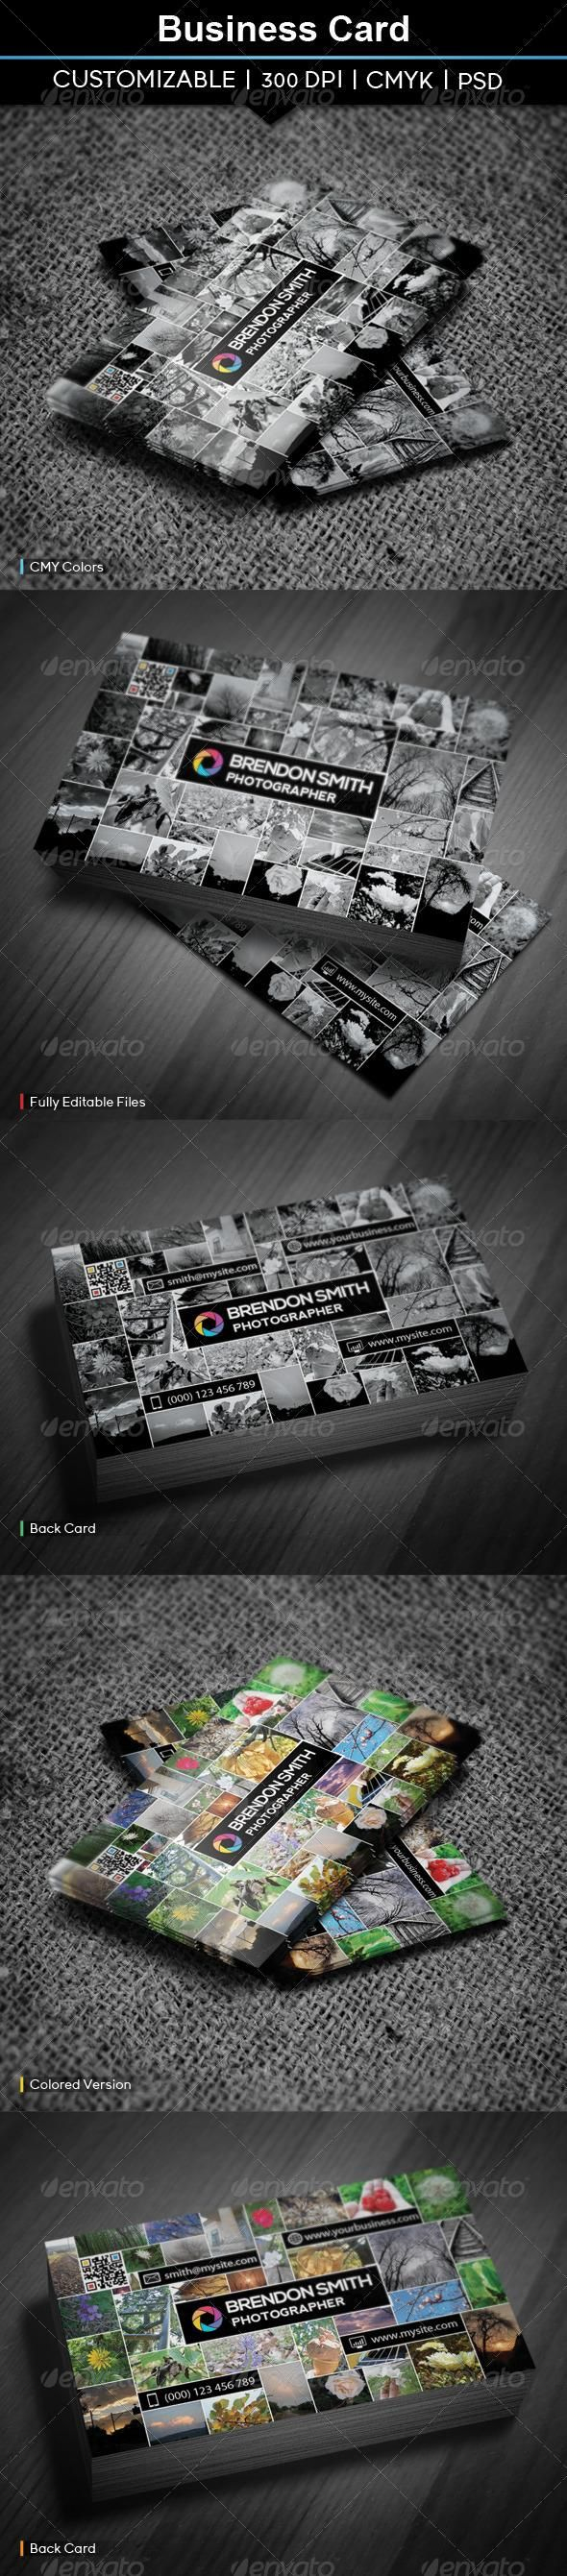 Business Card Photography